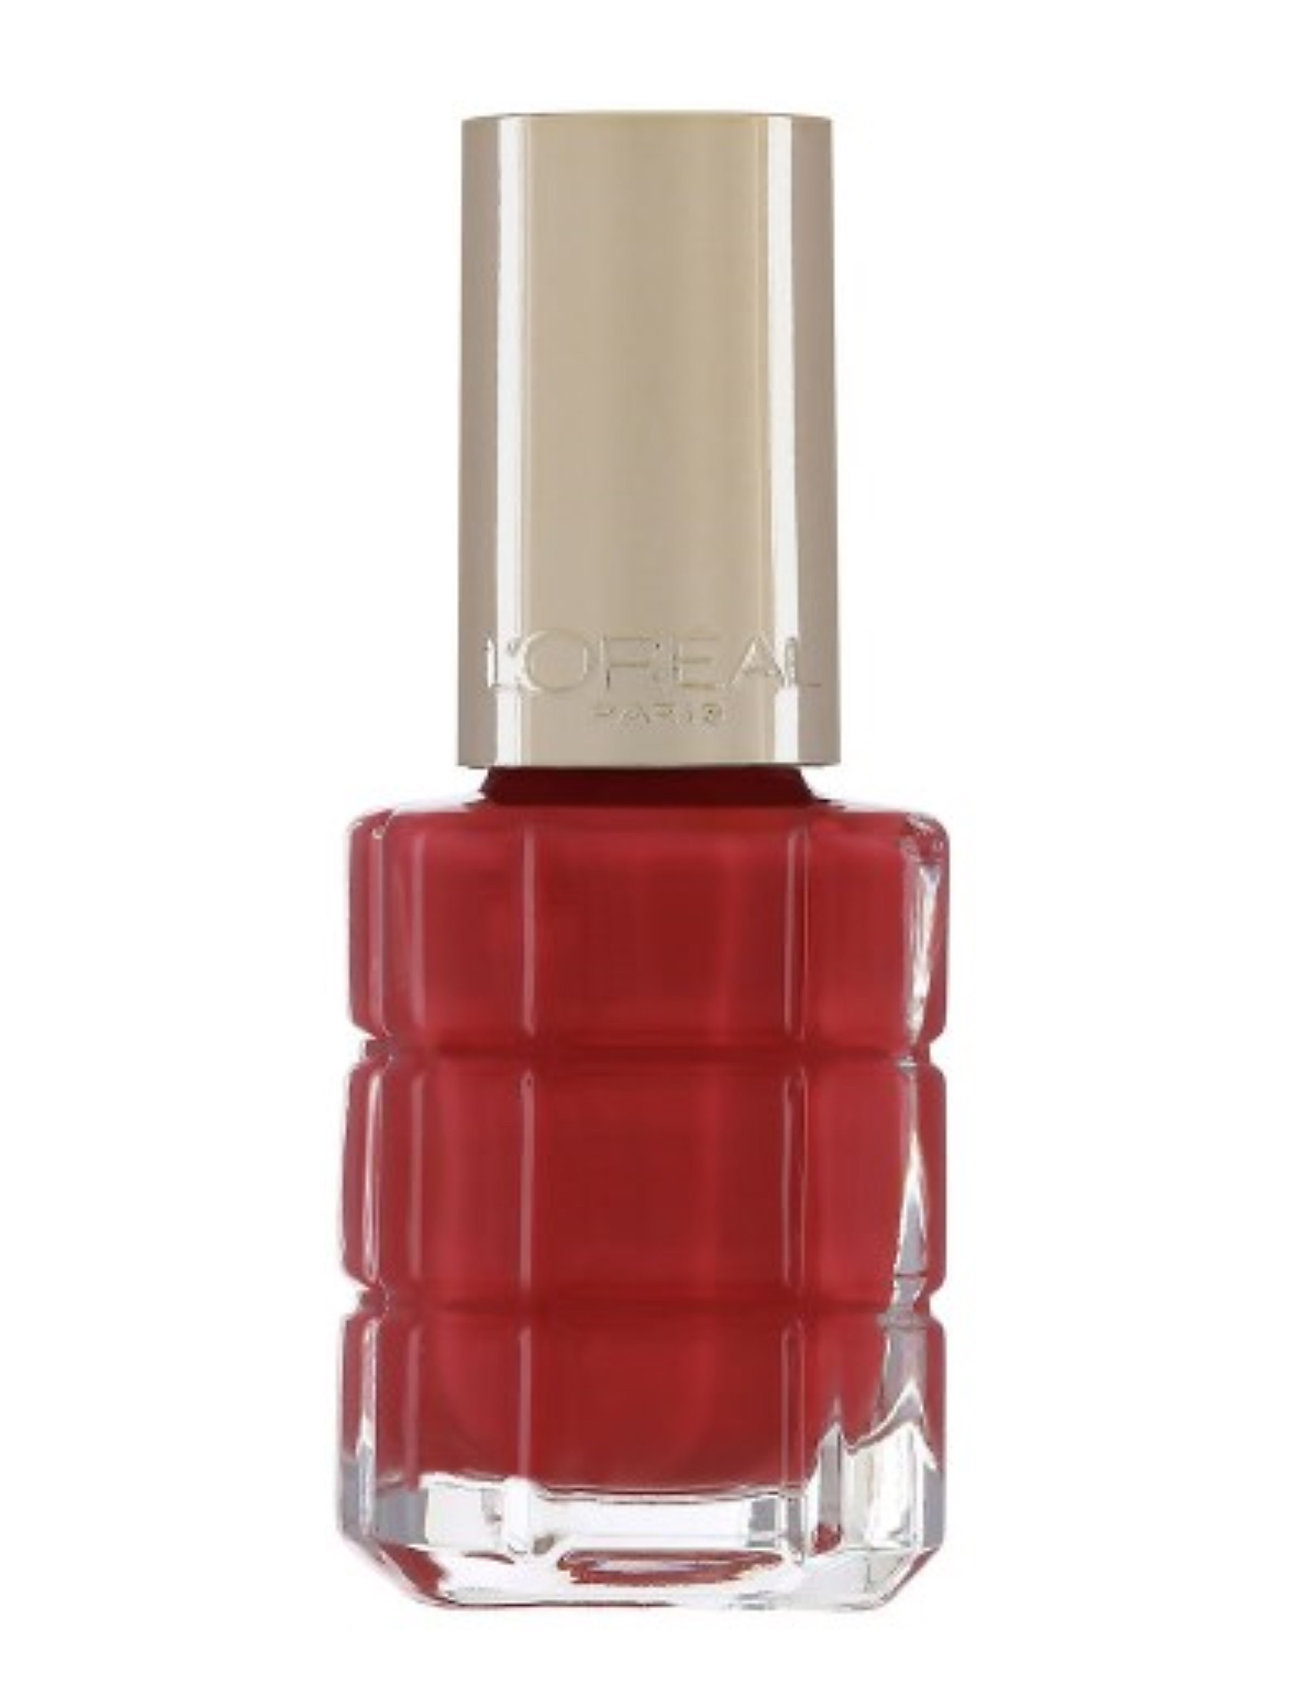 L'Oréal Paris Color Riche Le Vernis A L'Huile Nail polish